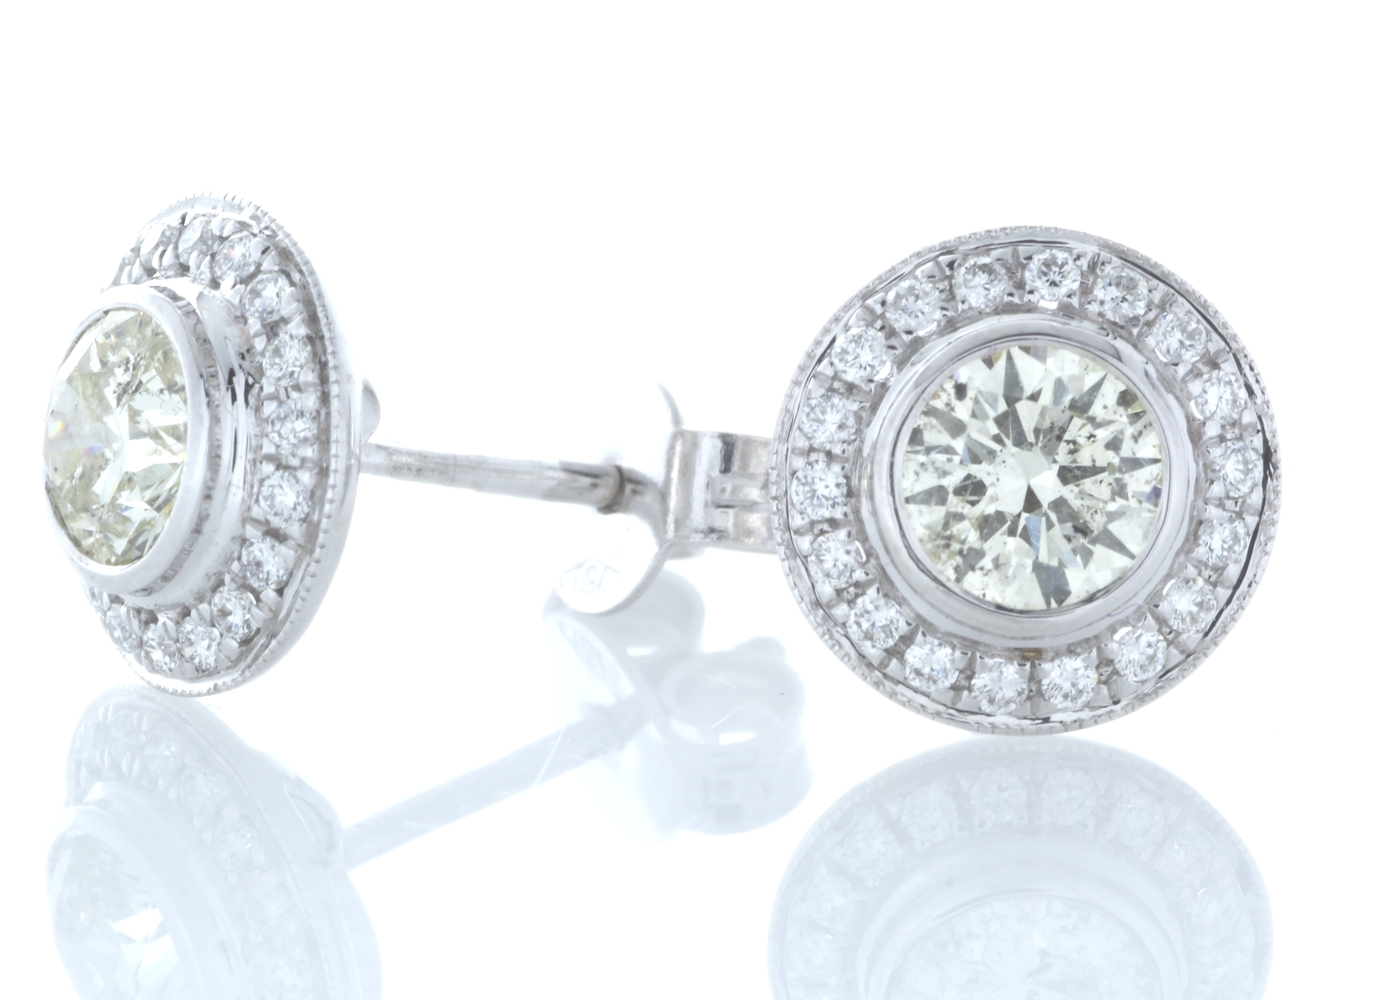 18ct White Gold Halo Set Diamond Earrings 1.20 Carats - Image 2 of 4